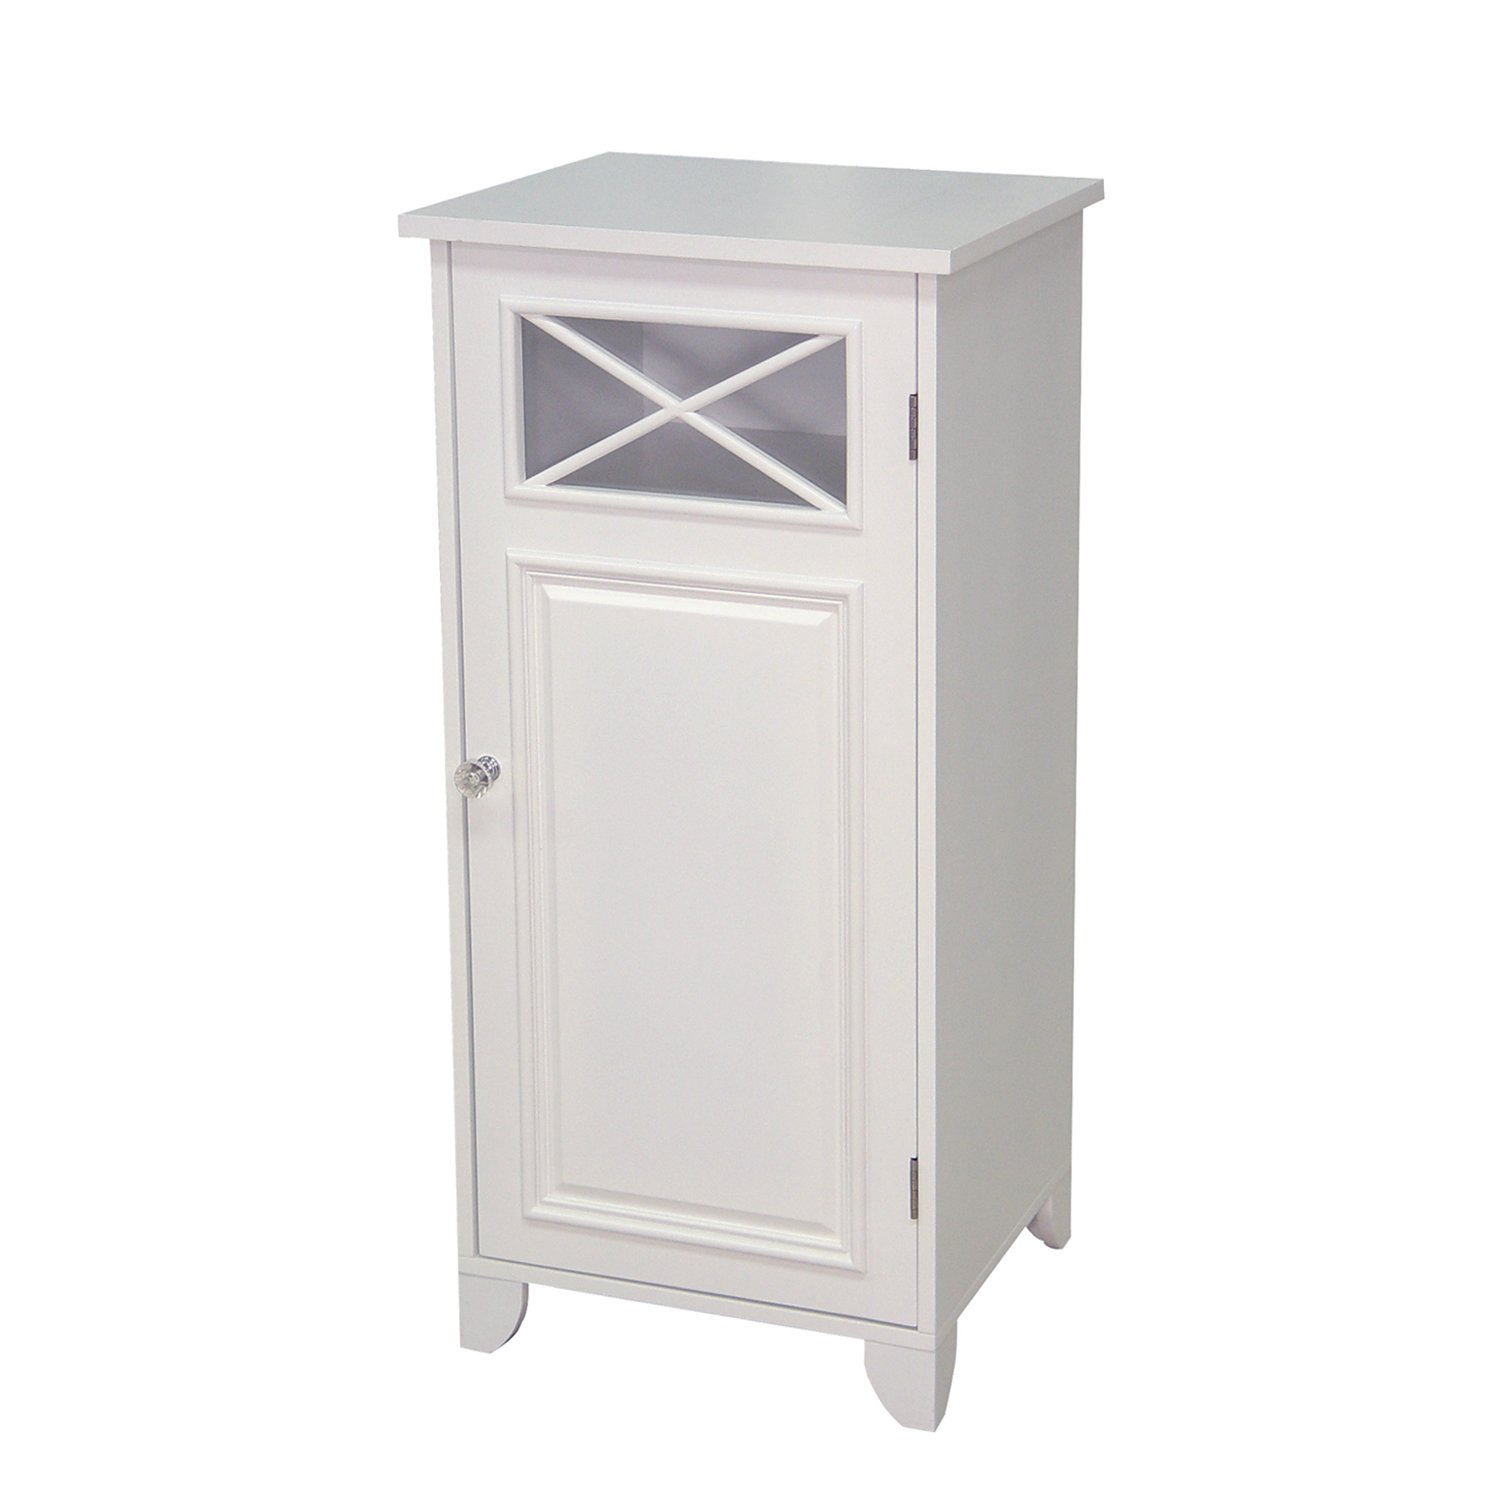 Ikea bathroom floor cabinet - Amazon Com Elegant Home Fashions Dawson Collection Shelved Floor Cabinet White Kitchen Dining